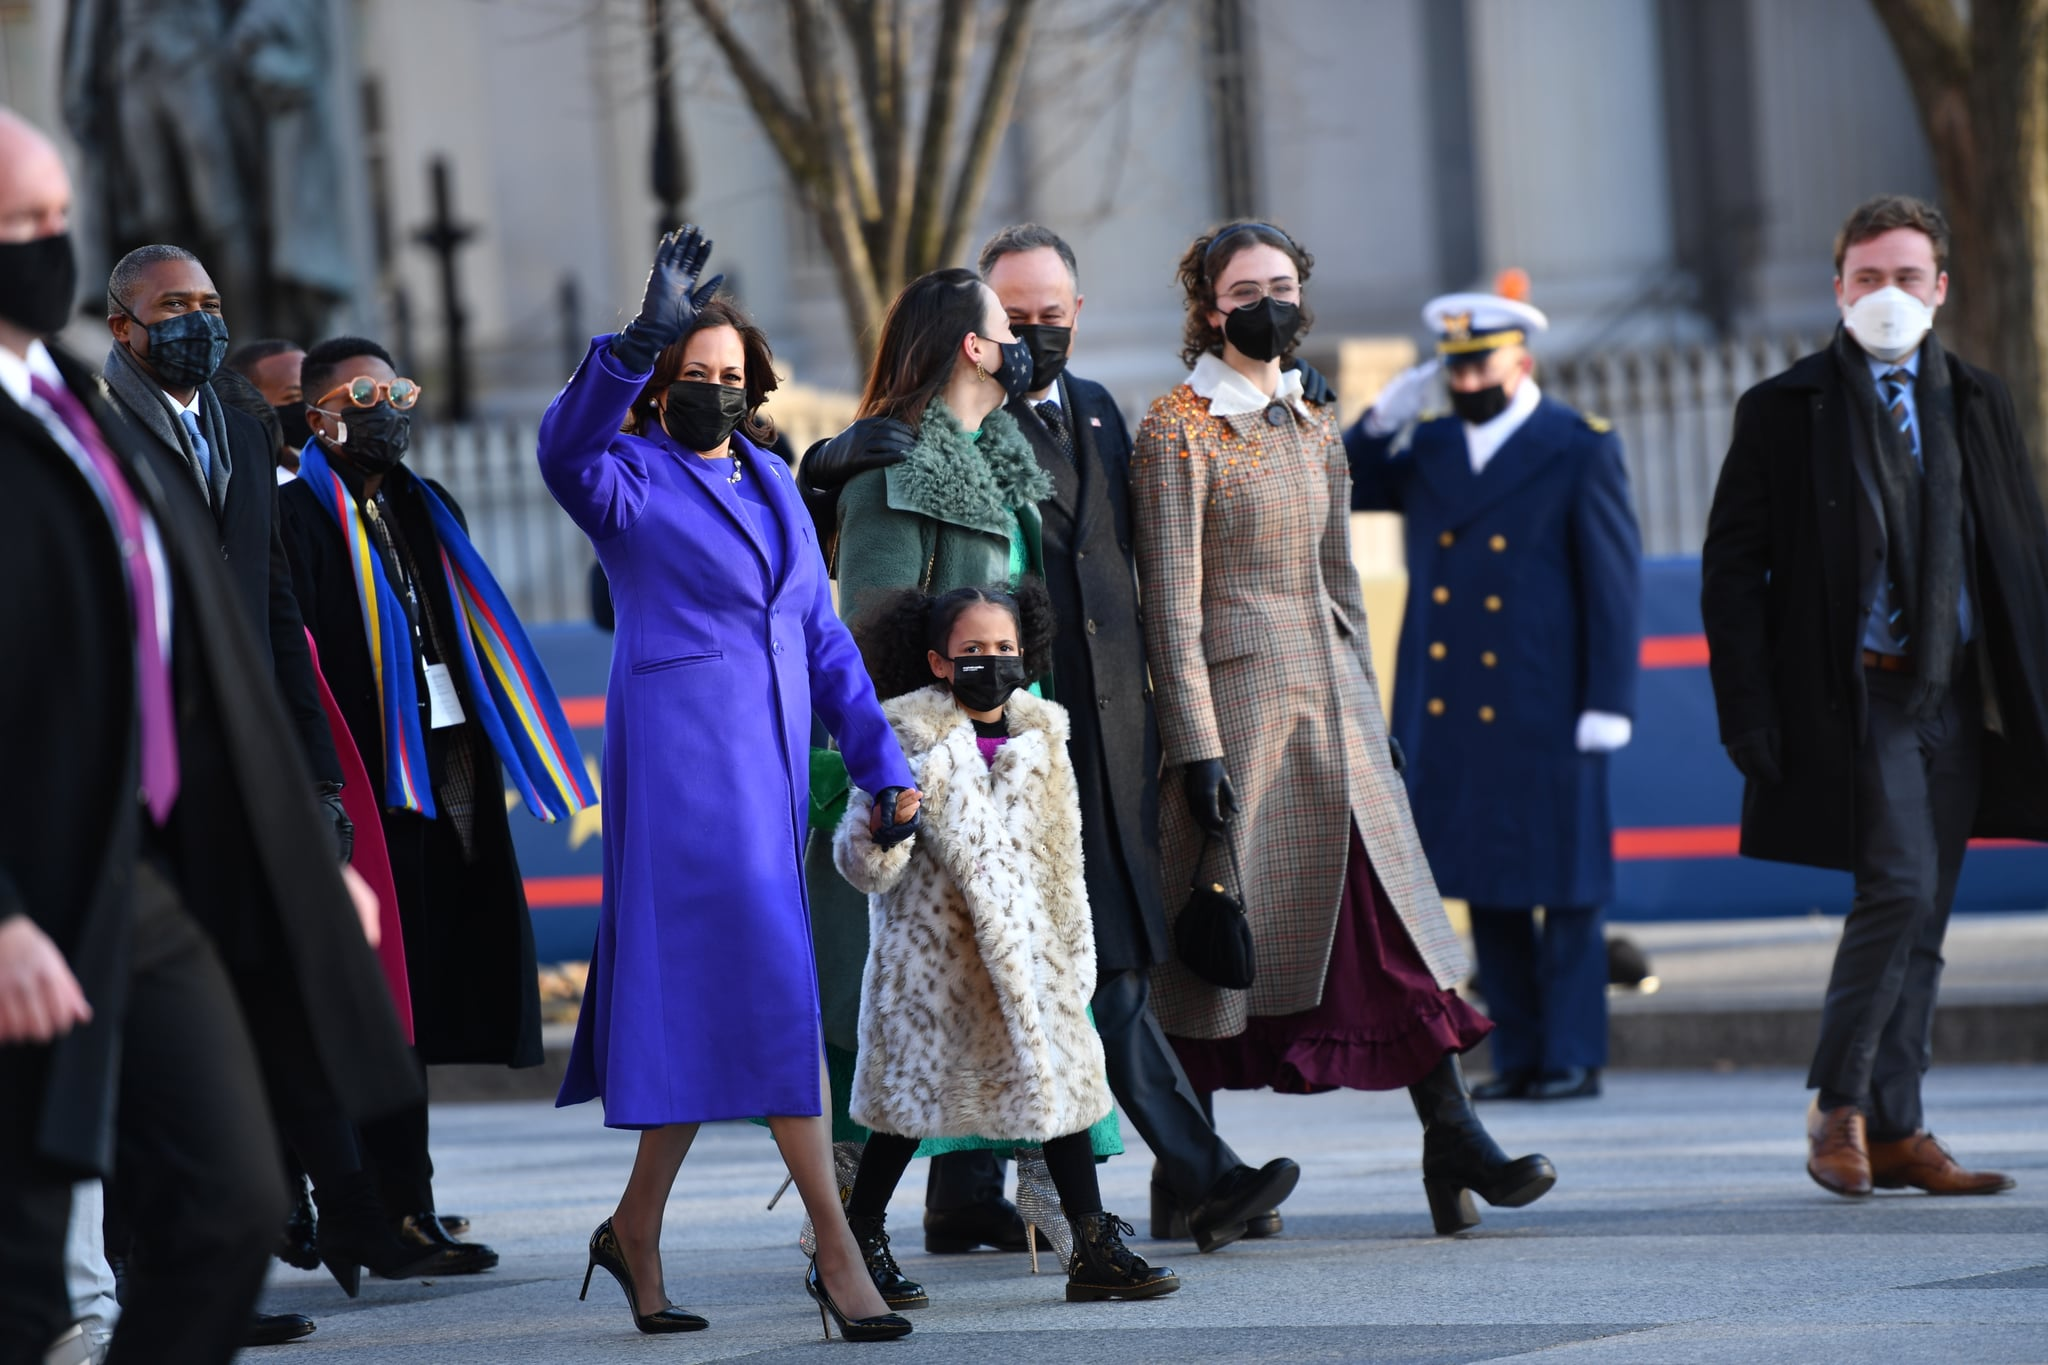 WASHINGTON, DC - JANUARY 20: U.S. Vice President Kamala Harris, husband Doug Emhoff, her great niece Amara, and family members walk the abbreviated parade route after U.S. President Joe Biden's inauguration on January 20, 2021 in Washington, DC. Biden became the 46th president of the United States earlier today during the ceremony at the U.S. Capitol. (Photo by Mark Makela/Getty Images)